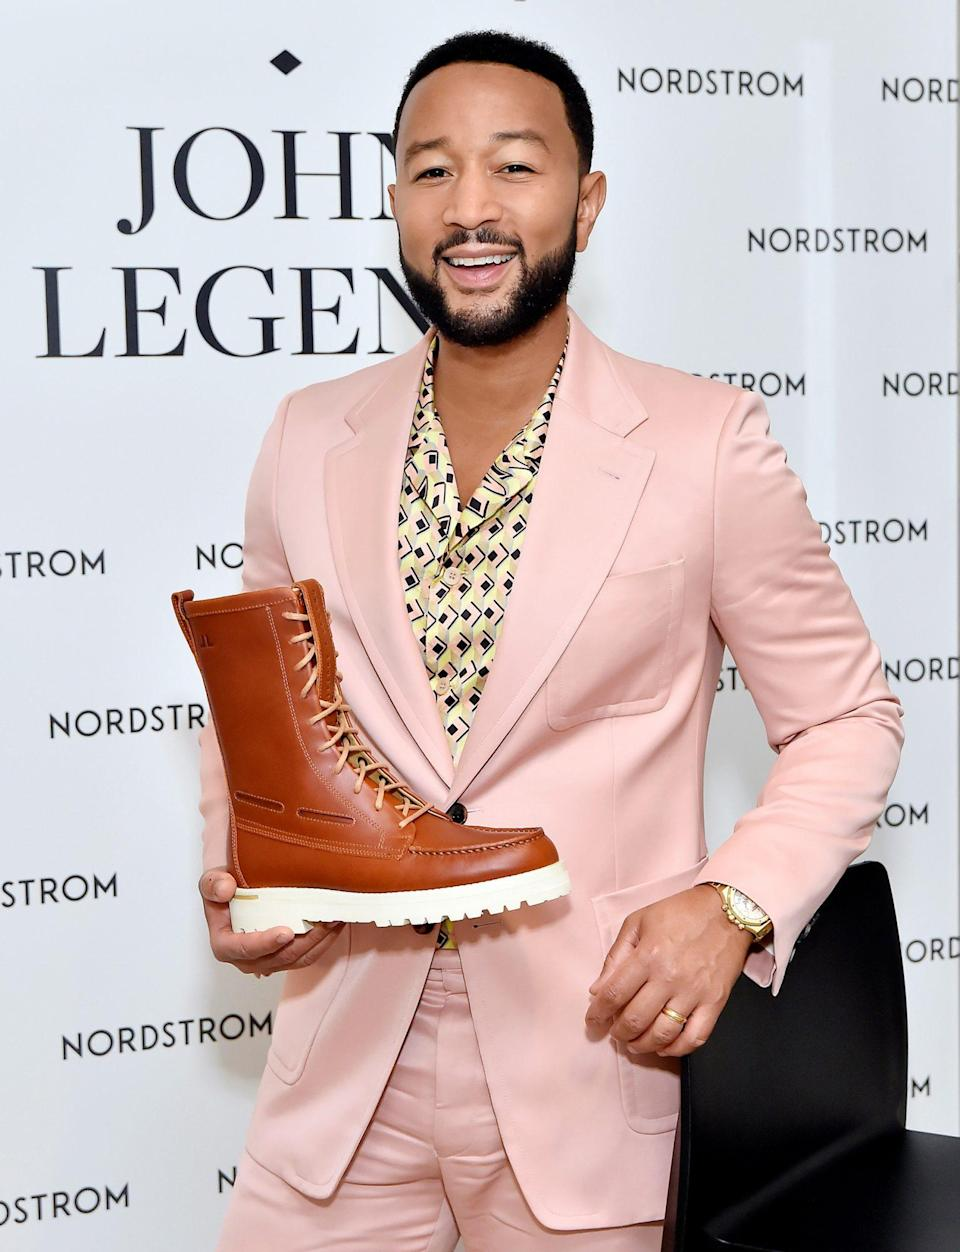 <p>John Legend gets all dressed up on Sept. 20 to celebrate the launch of his Sperry x John Legend Collection at Nordstrom at The Grove in L.A.</p>